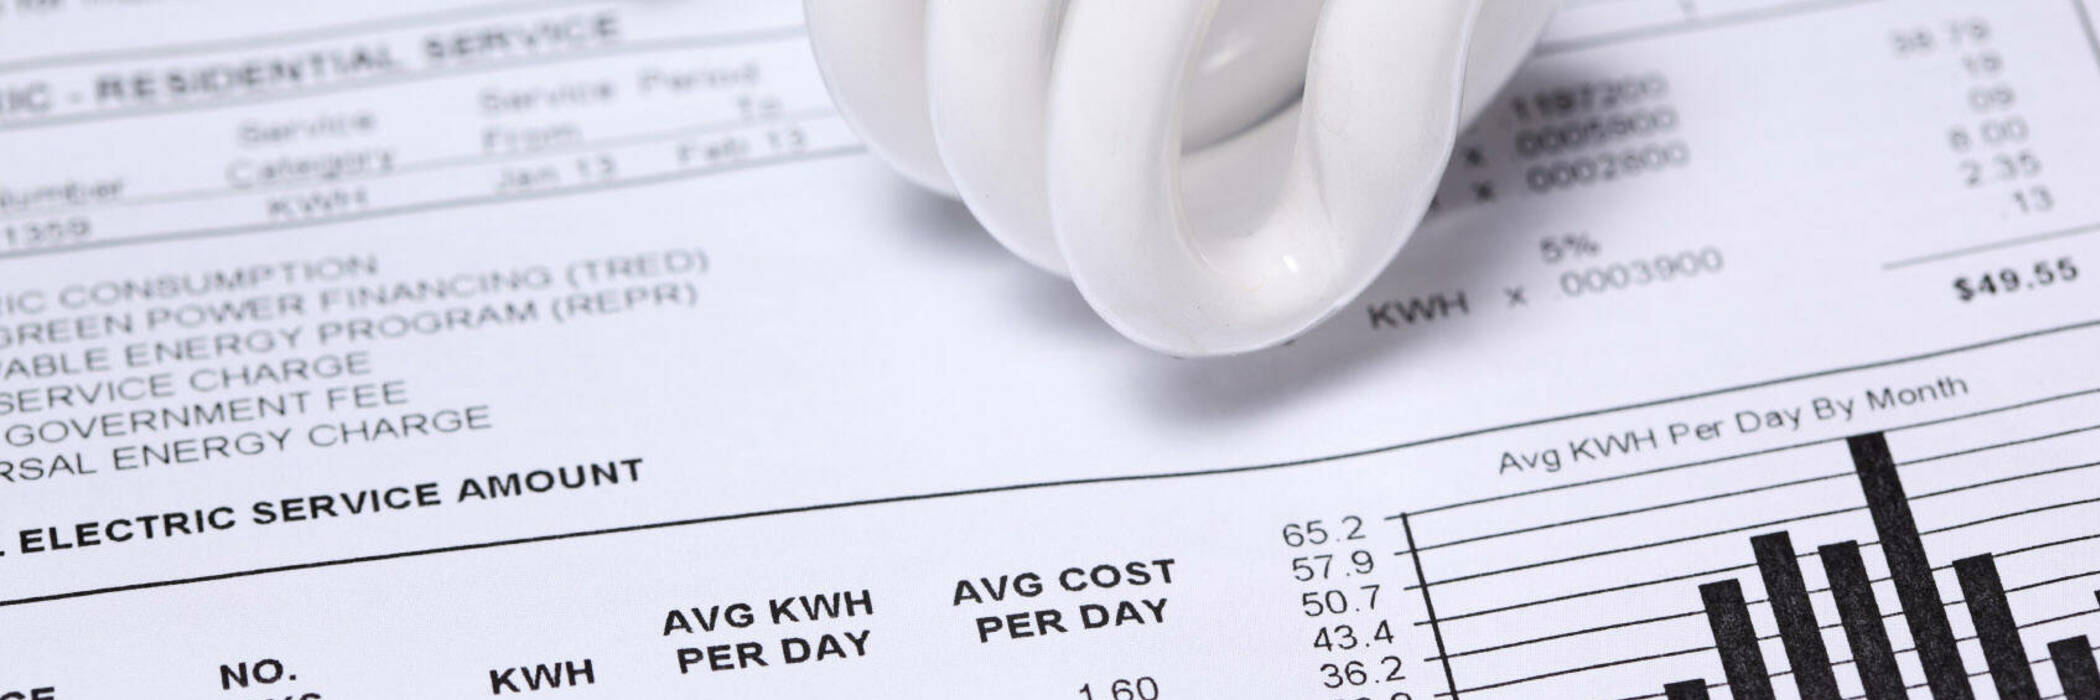 16may fixed term power contracts come with sting hero